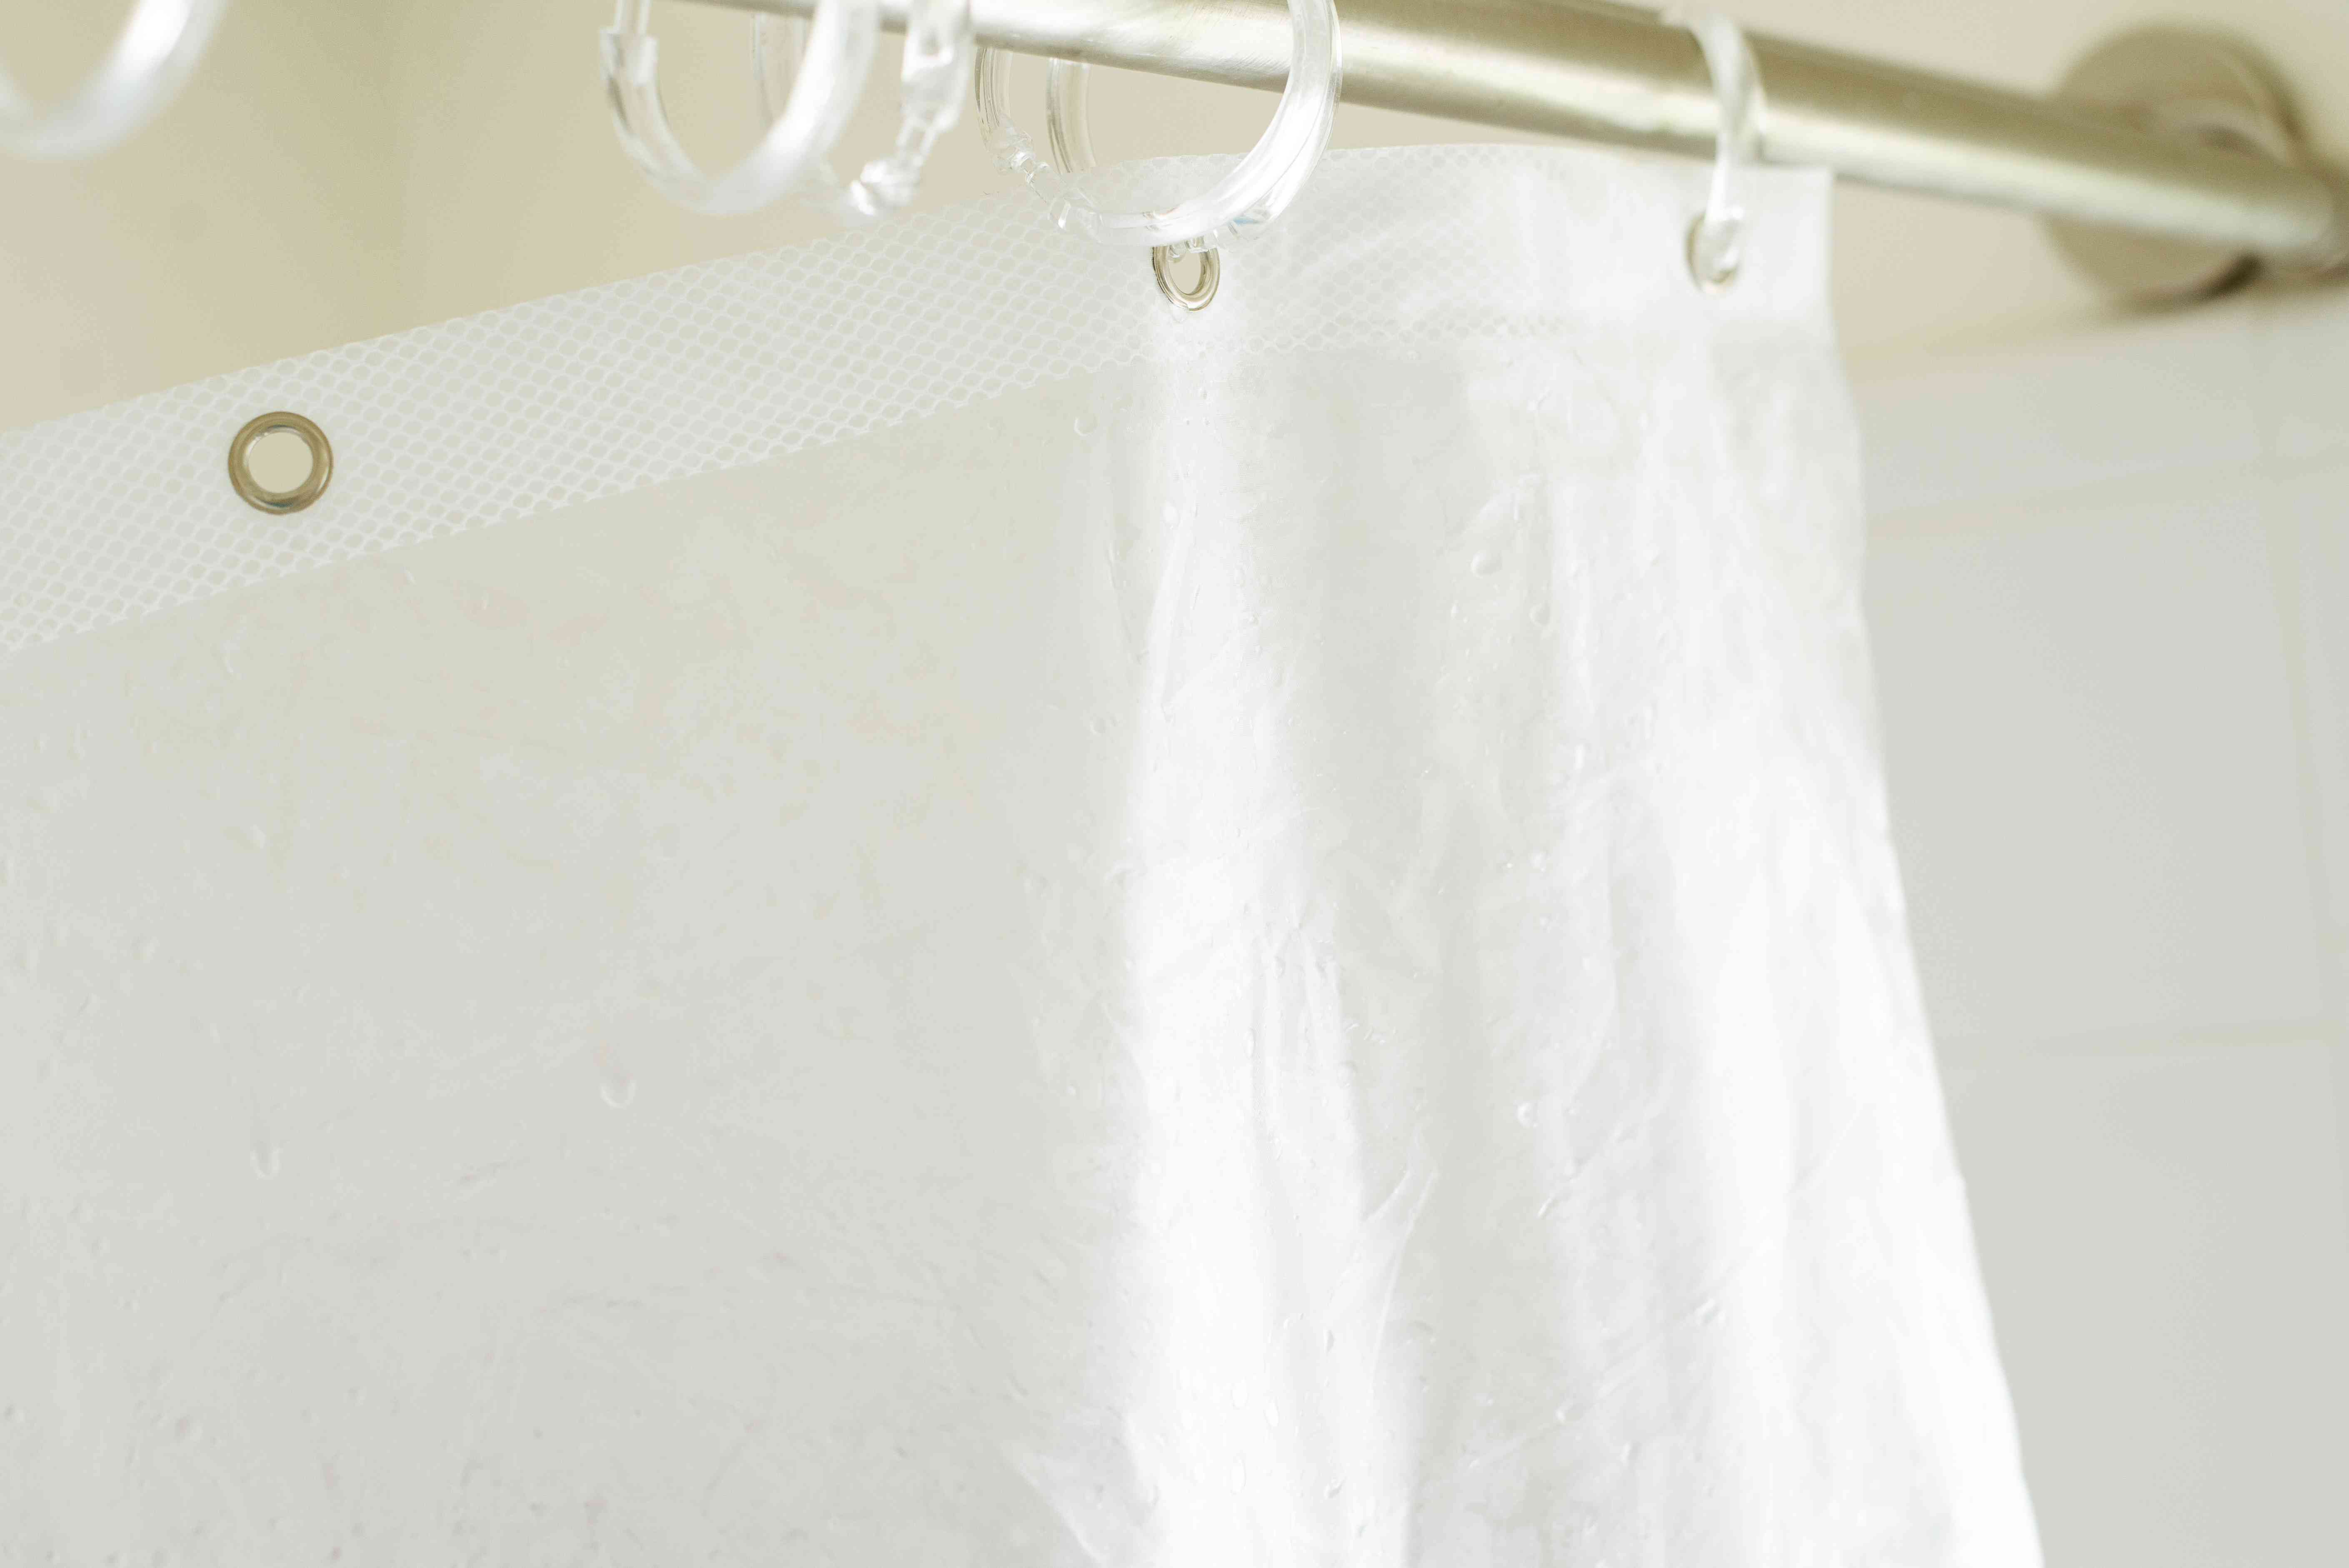 Wrinkled vinyl shower curtain held up on shower rod to air dry